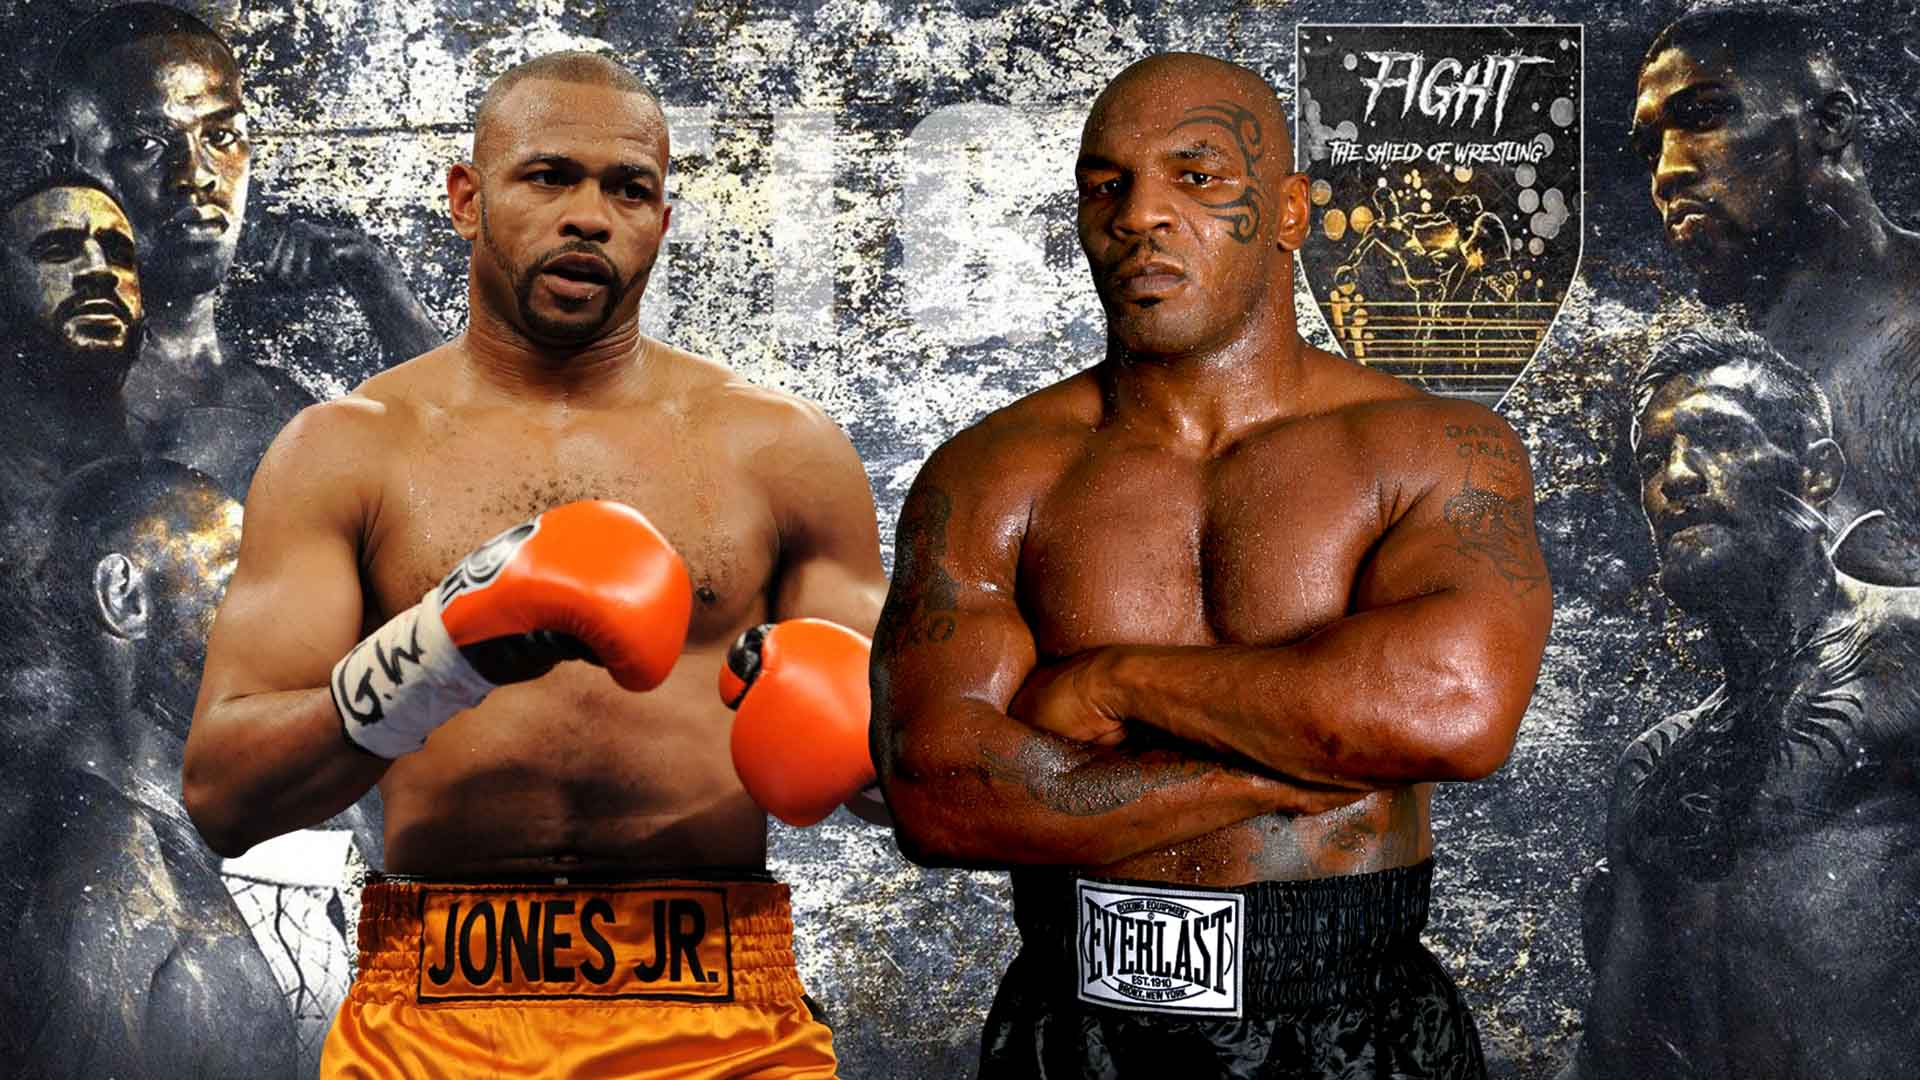 Mike Tyson Vs Roy Jones Jr posticipato al 28 novembre